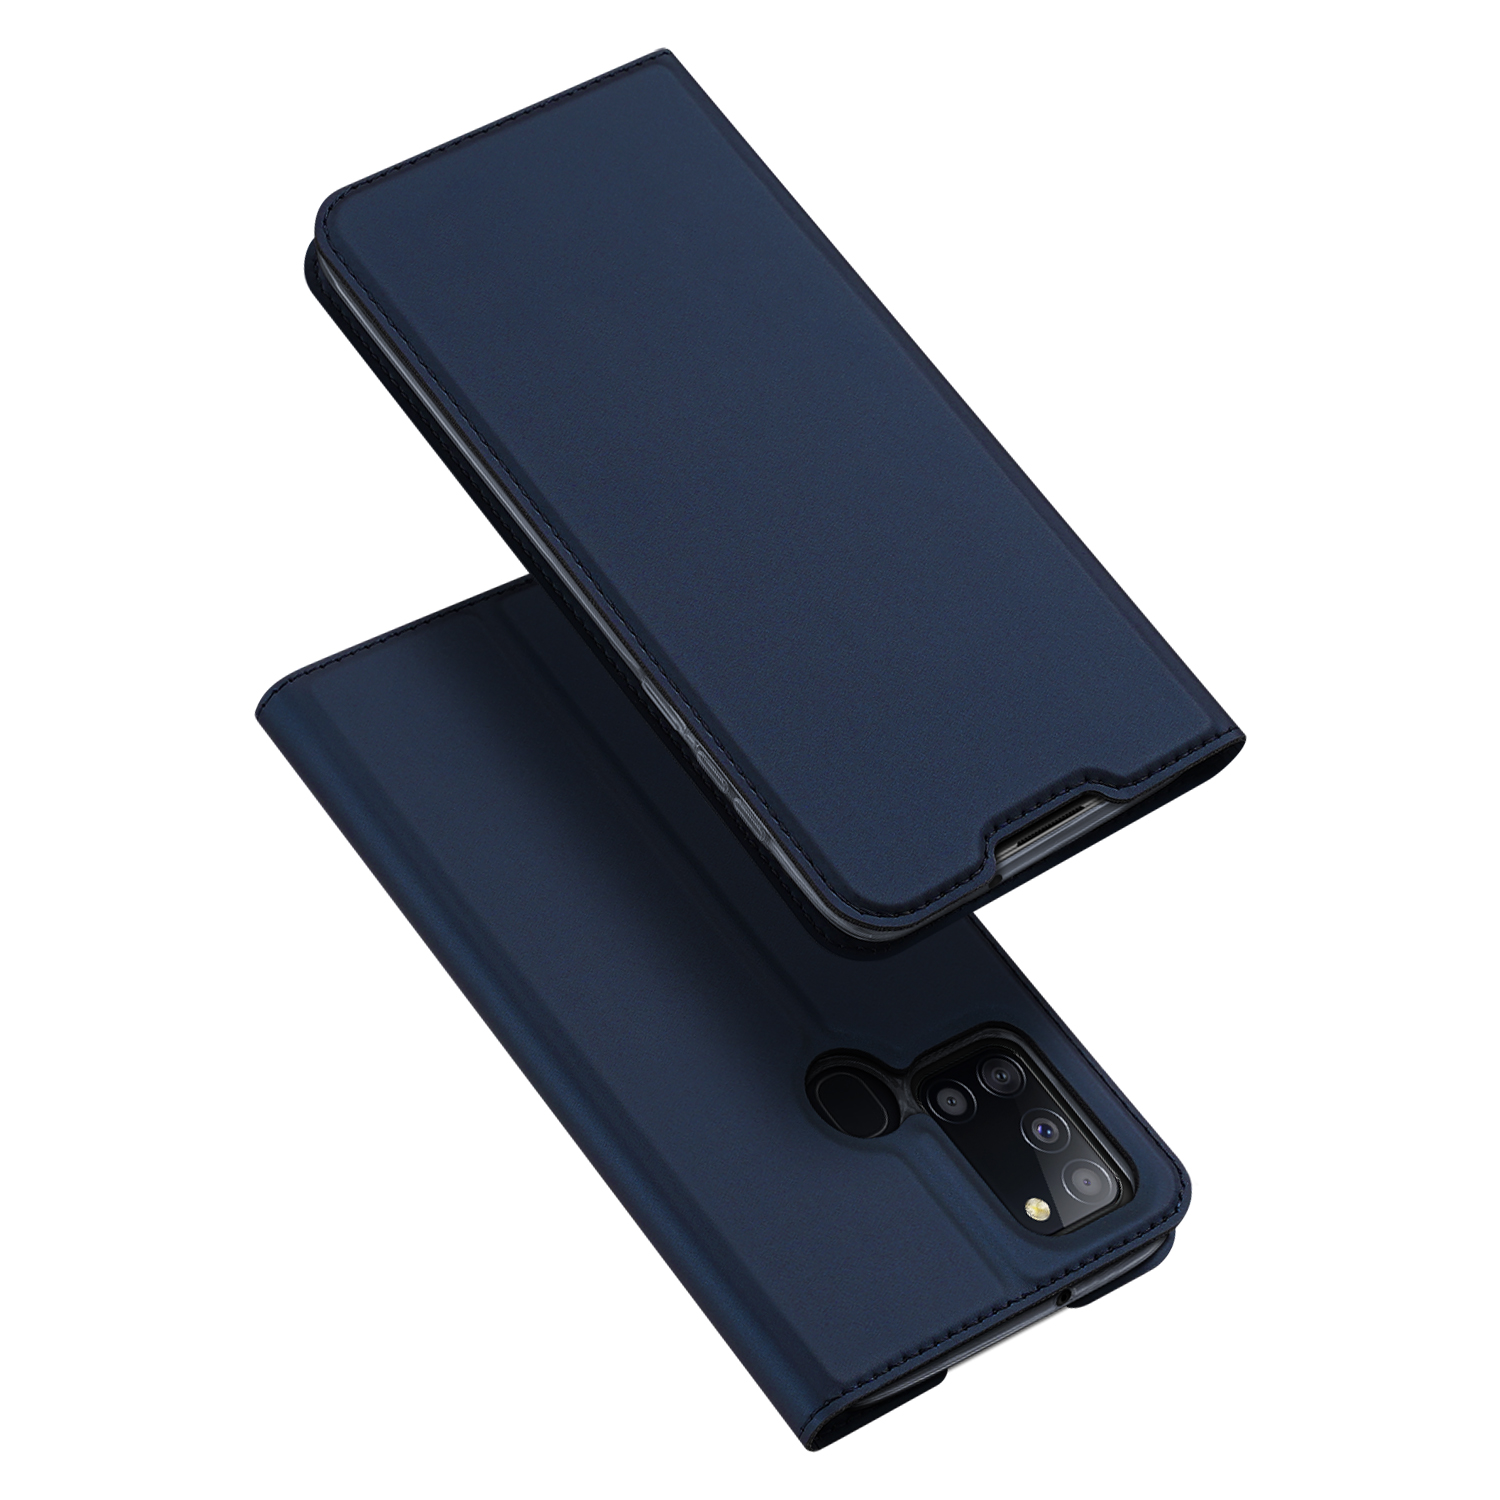 DUX DUCIS for Samsung A21s/A51 5G Magnetic Protective Case Bracket with Card Slot Leather Mobile Phone Cover blue